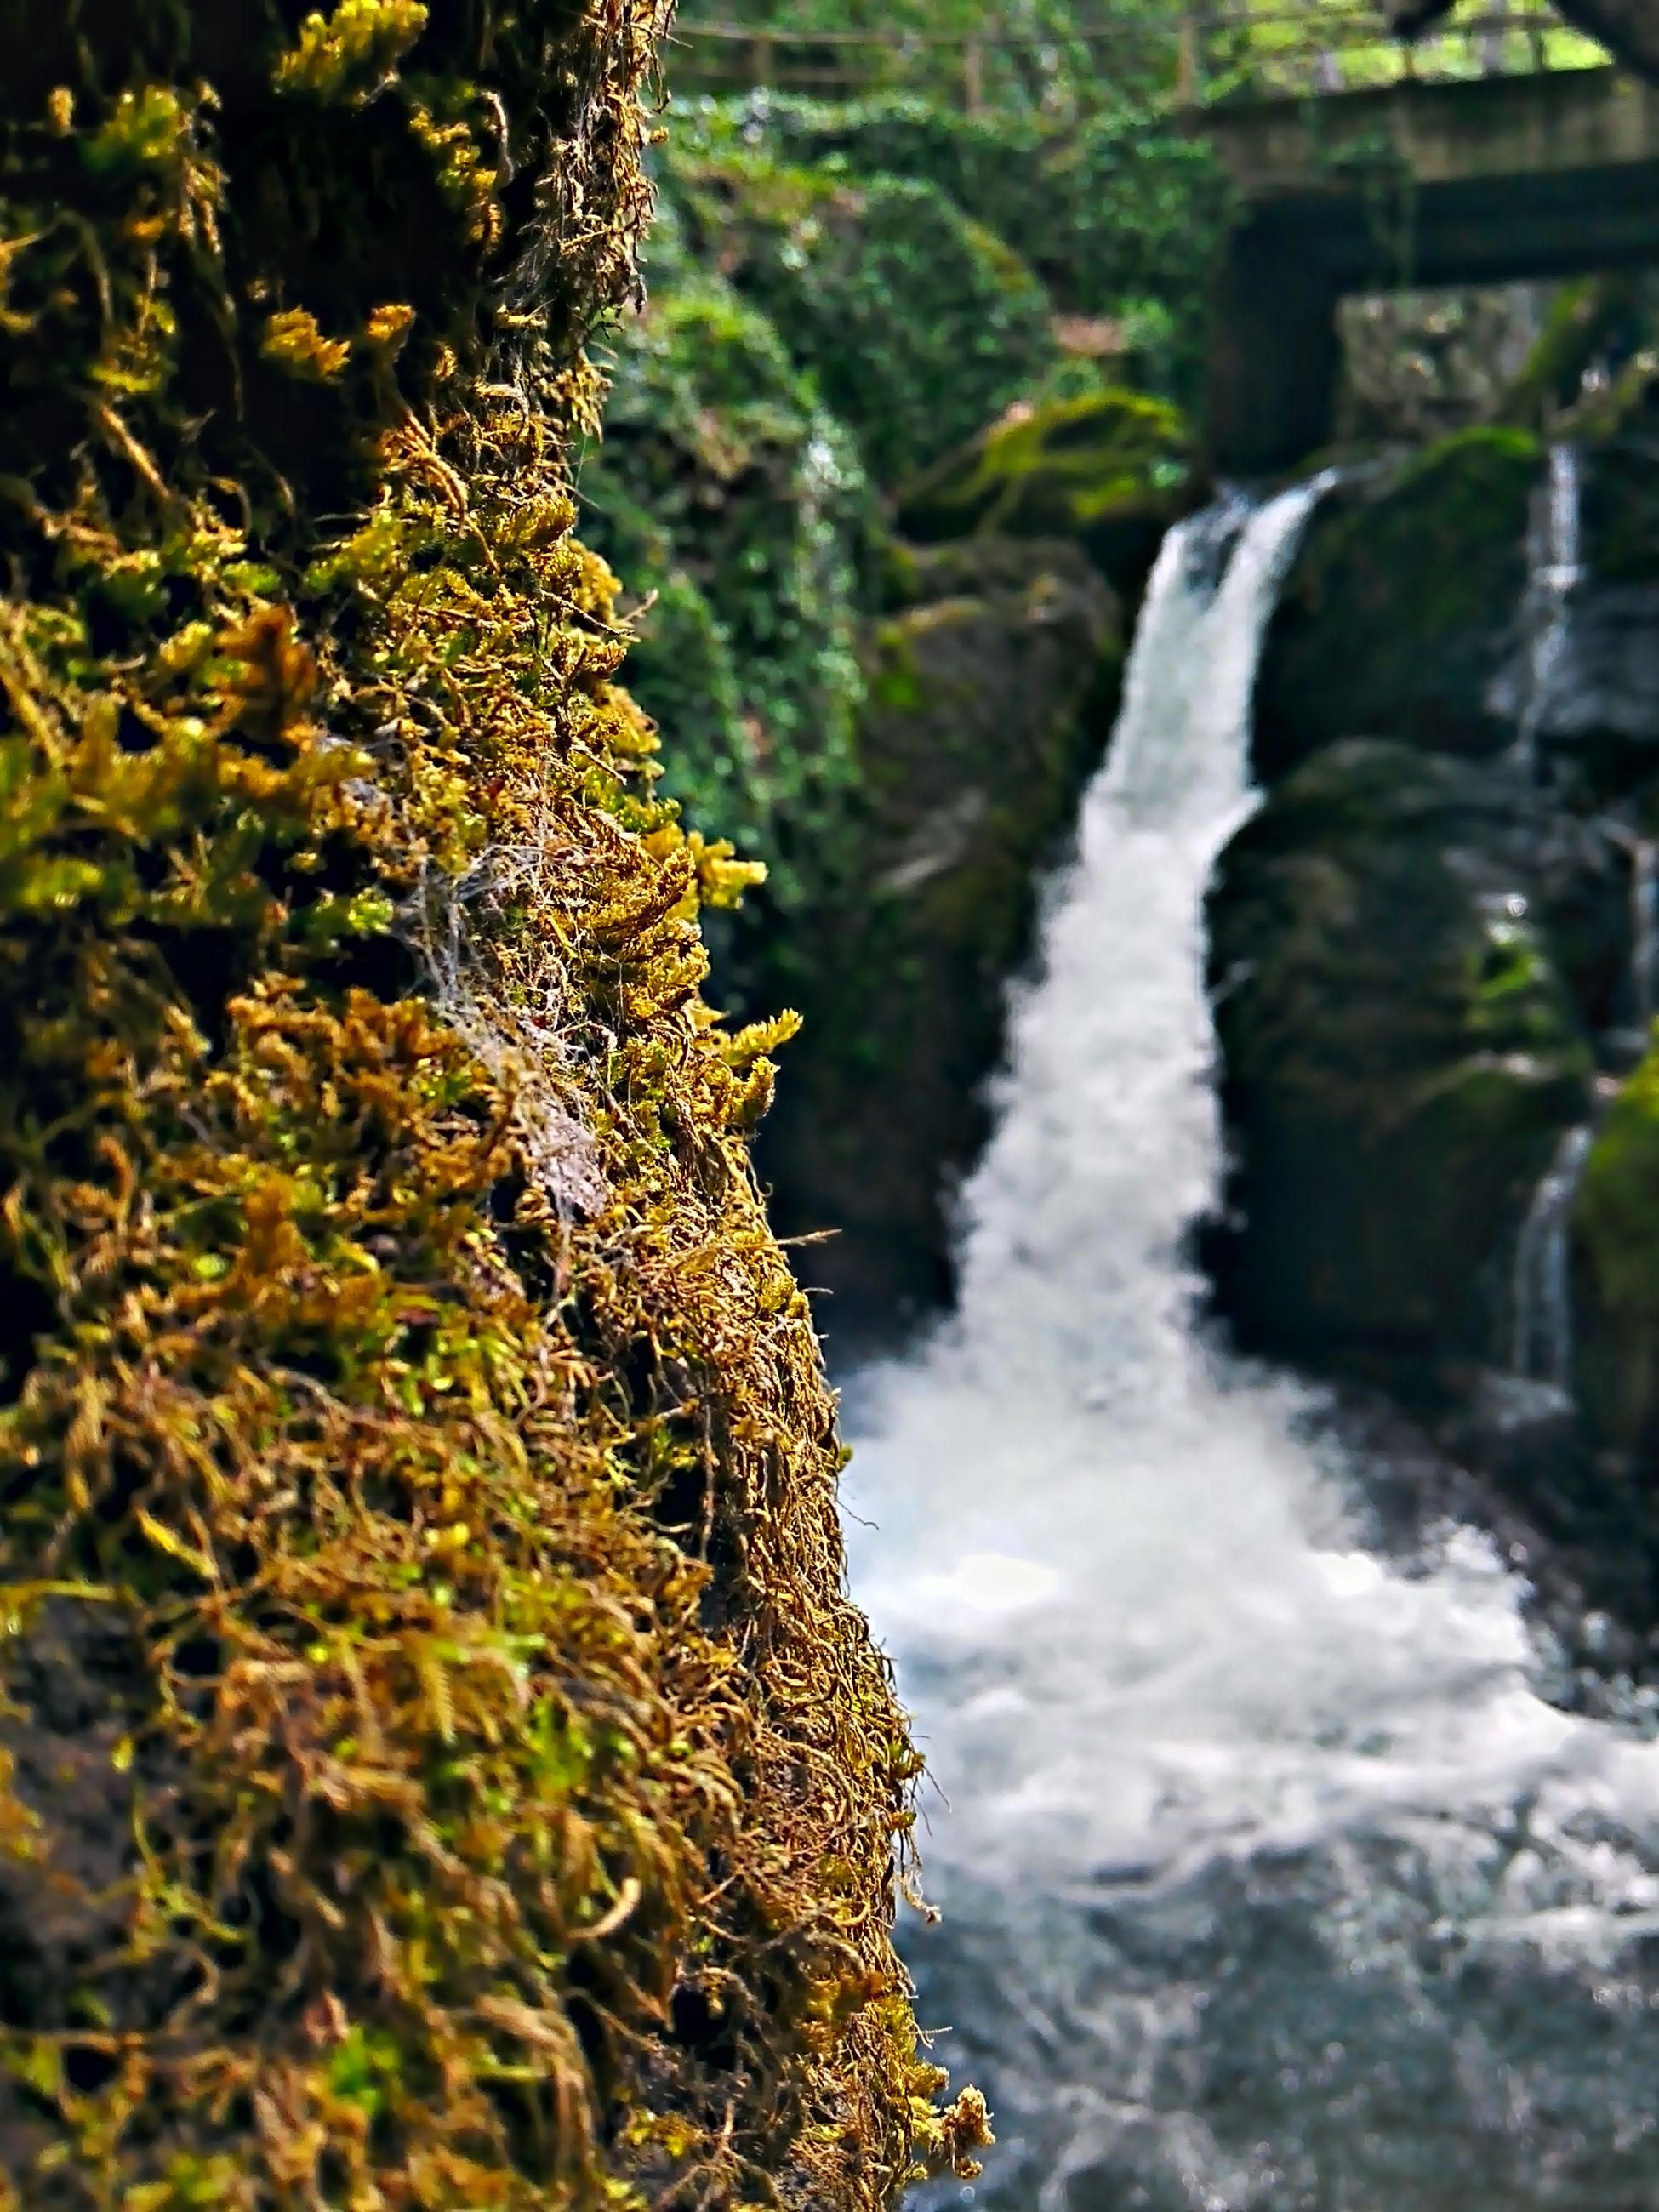 water, flowing water, nature, close-up, waterfall, motion, beauty in nature, plant, flowing, freshness, rock - object, growth, outdoors, focus on foreground, day, moss, forest, waterfront, no people, leaf